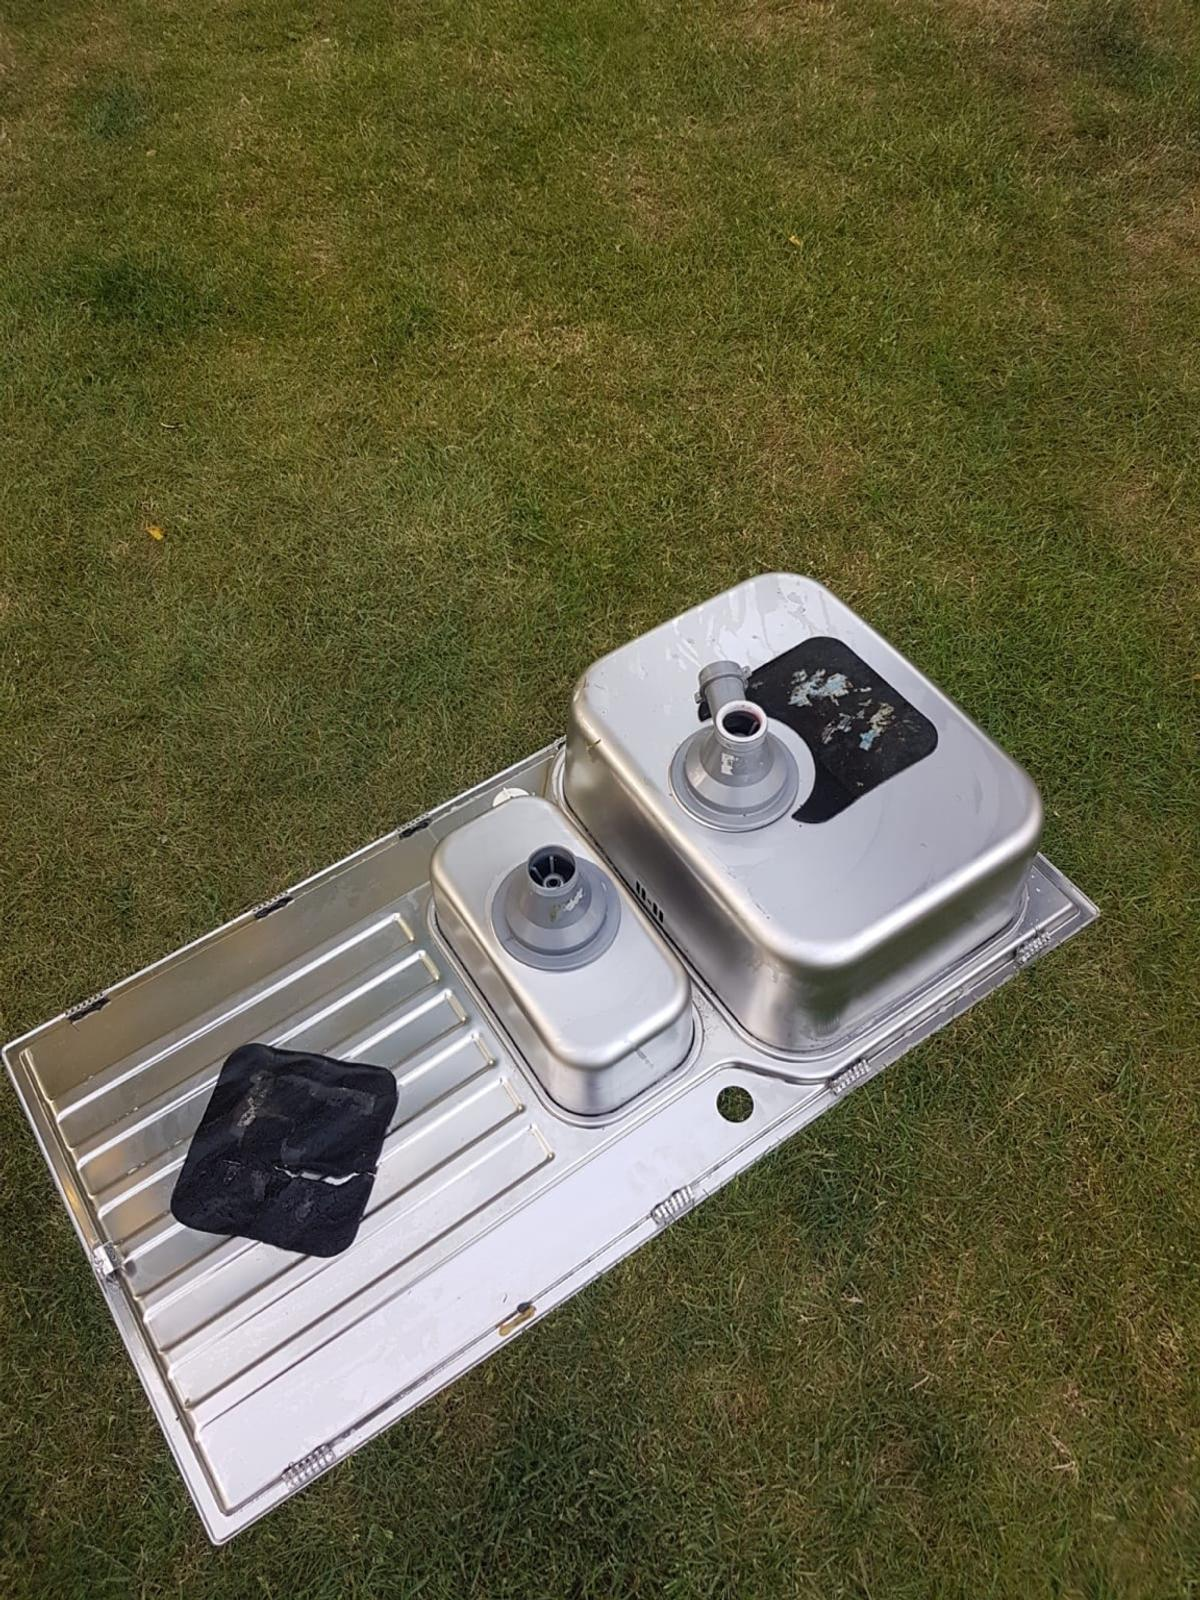 Stainless steel double inset sink 1000mm wide good heavy quality not been used stored in shed these are £170 new